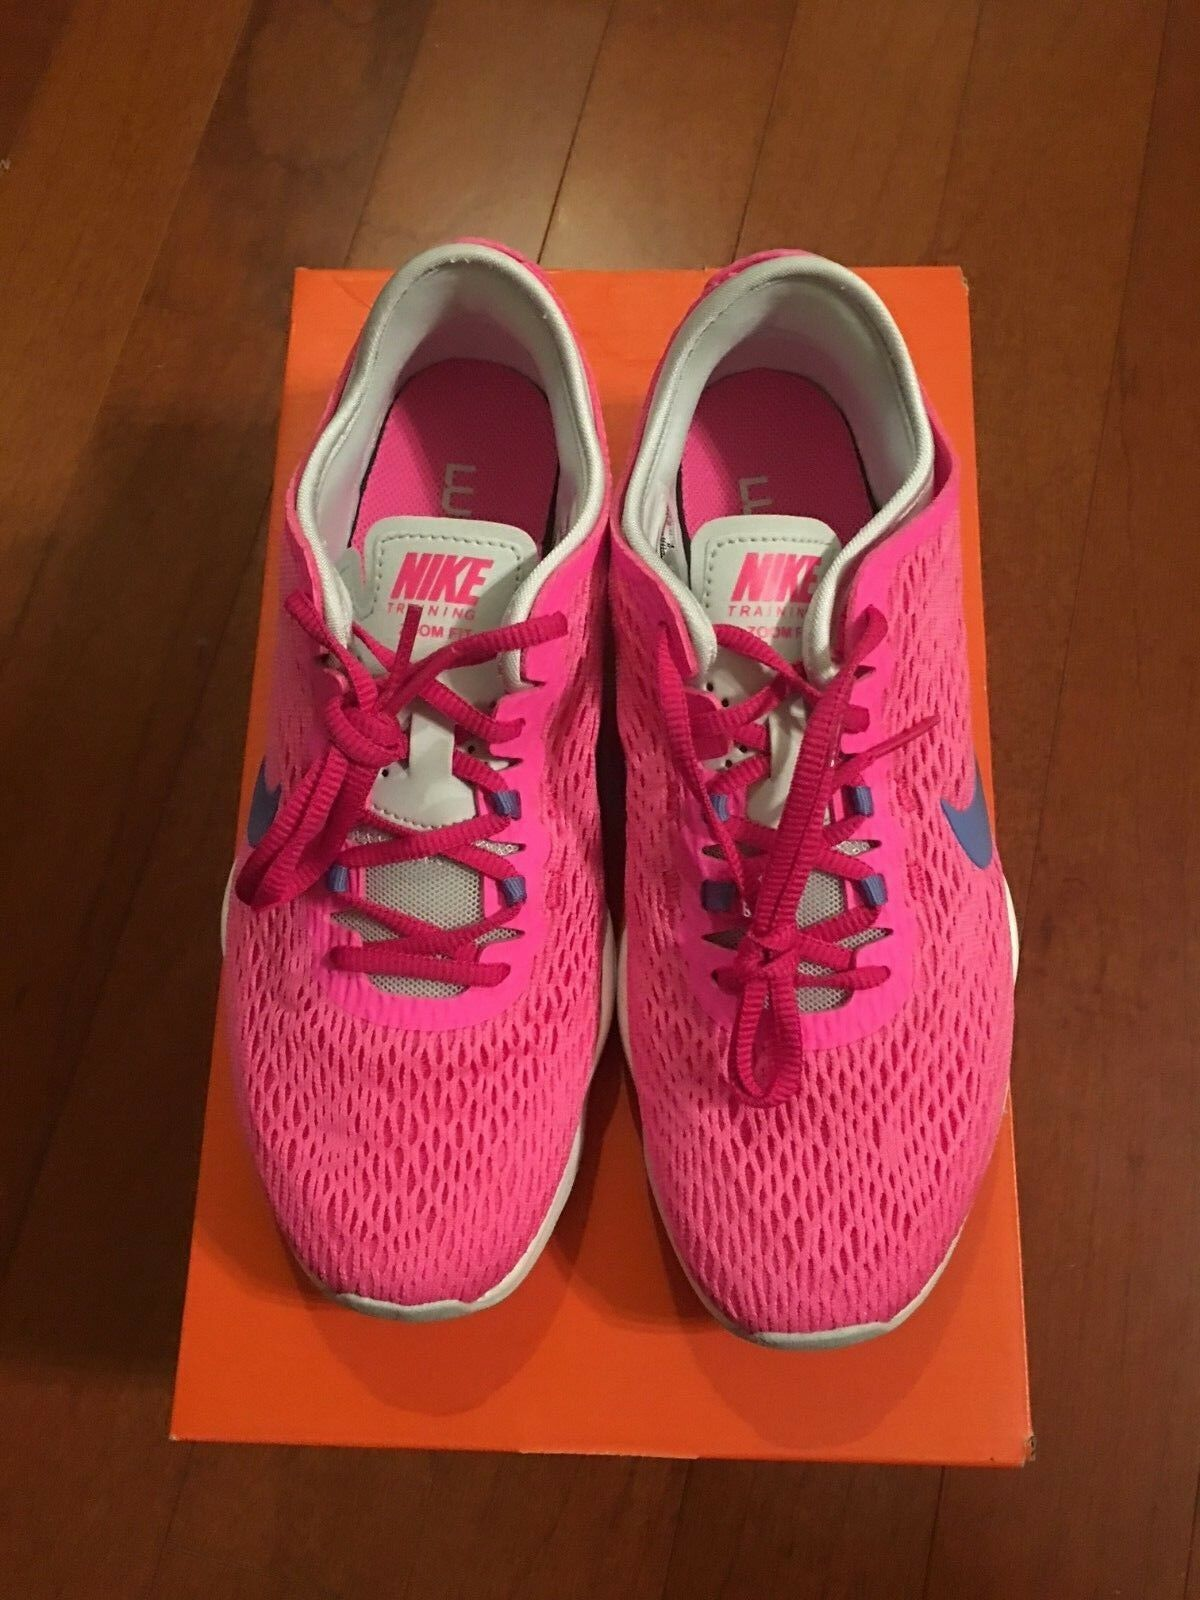 Nike Zoom Fit Women's shoes Size 7 Pink 704658 600 NEW In Box